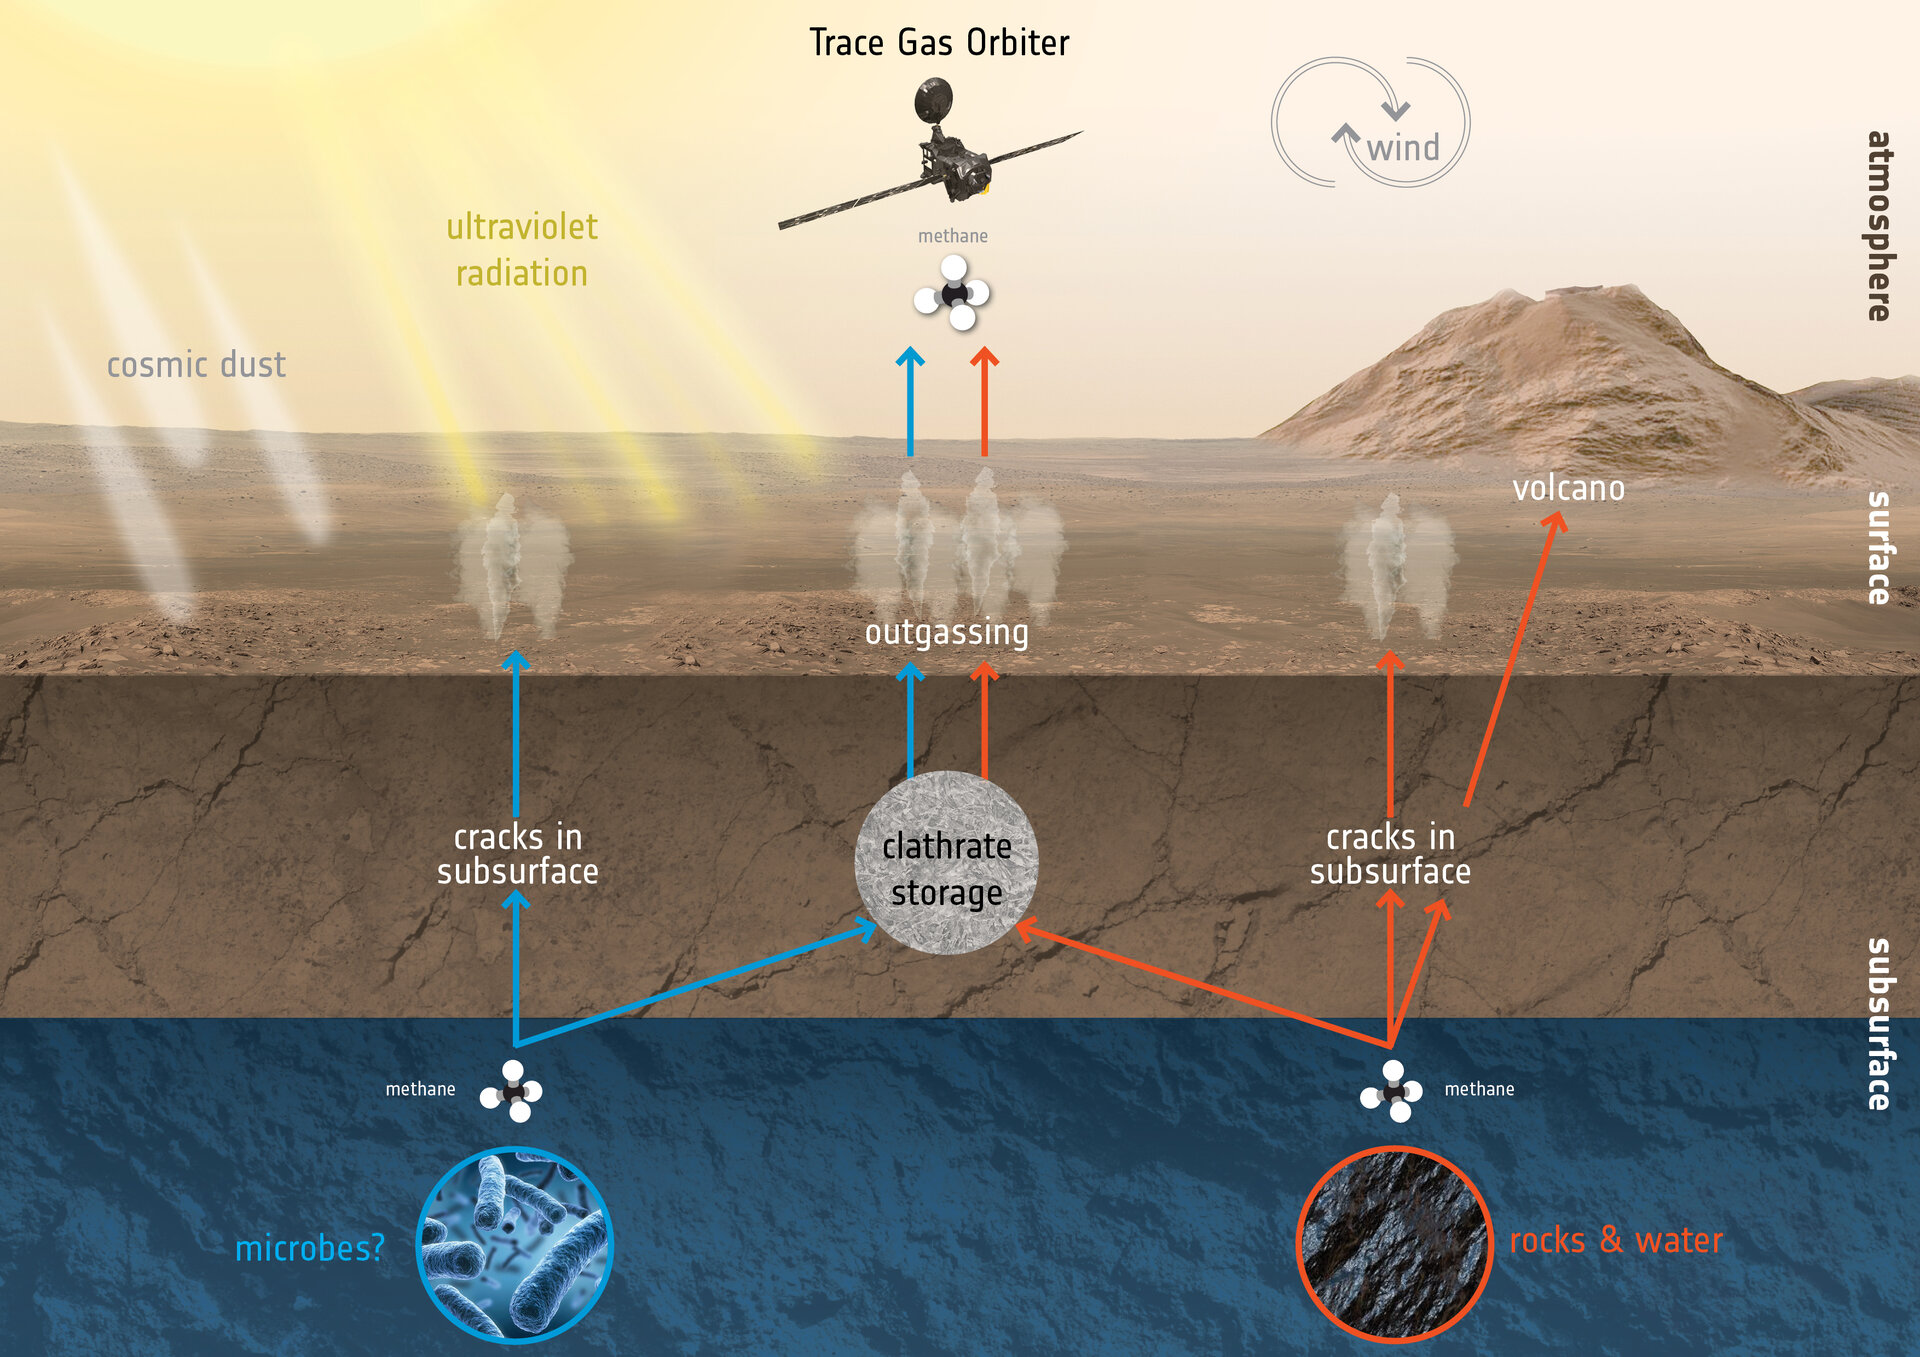 How to create and destroy methane on Mars